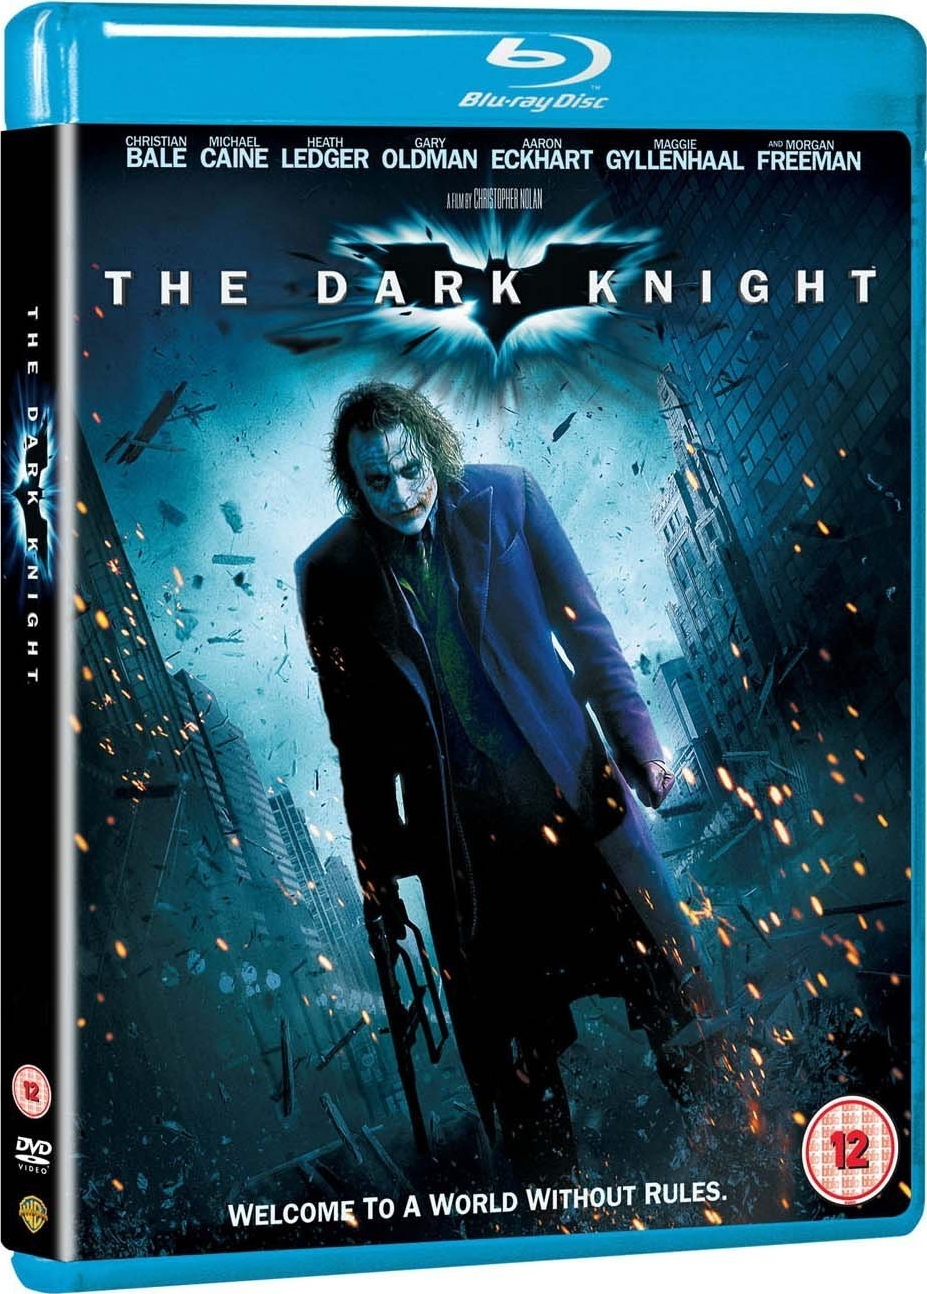 the-dark-knight-bluray-disc-case-box